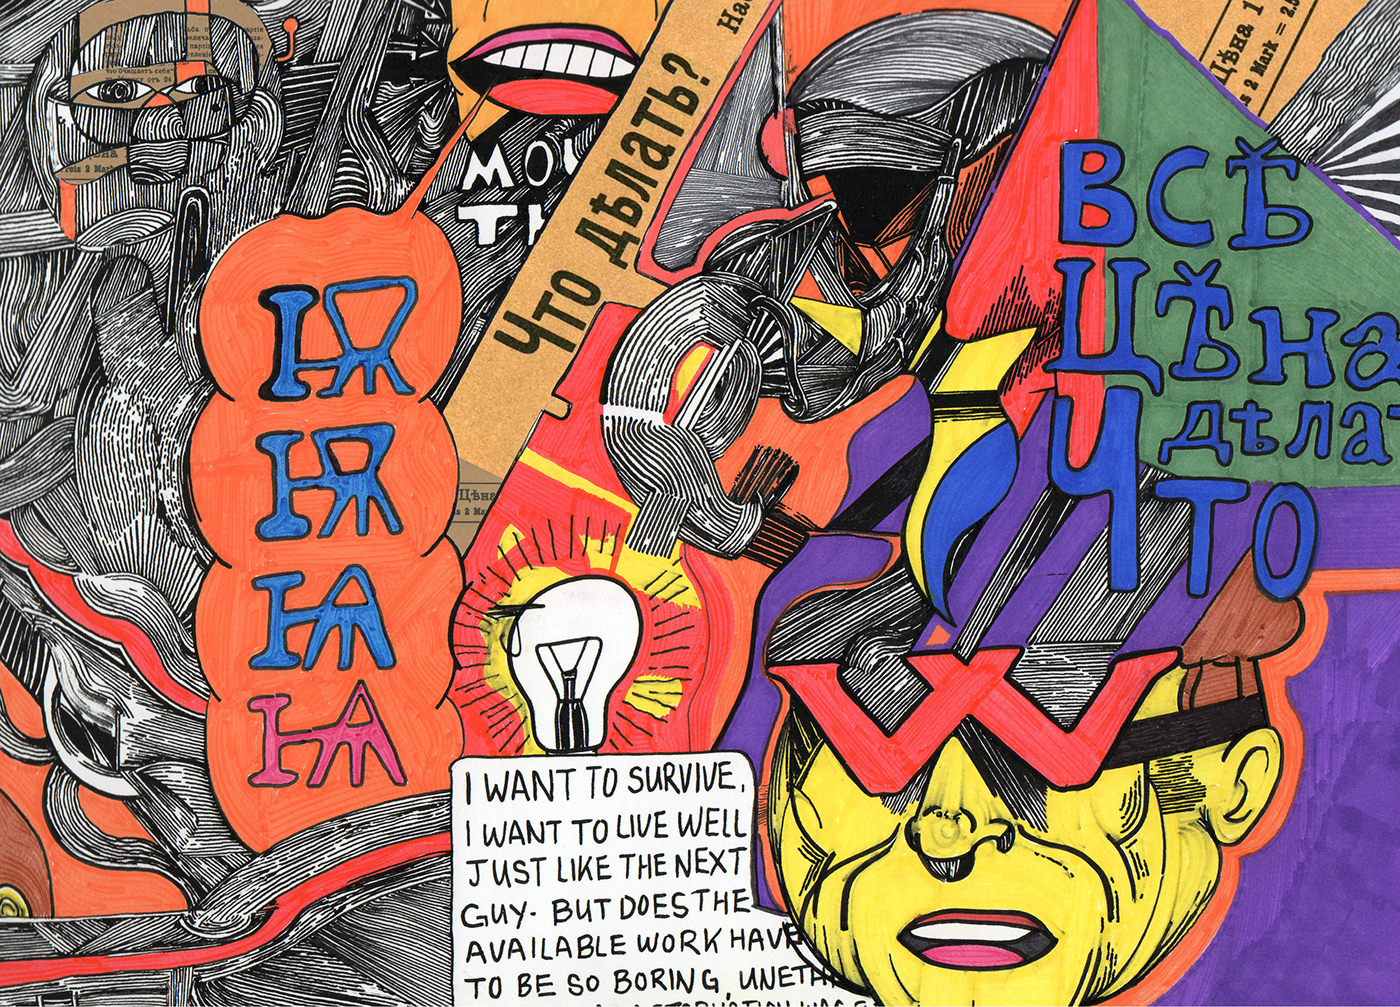 markers, color, layering, abstract face, drawn quote, lightbulb doodle